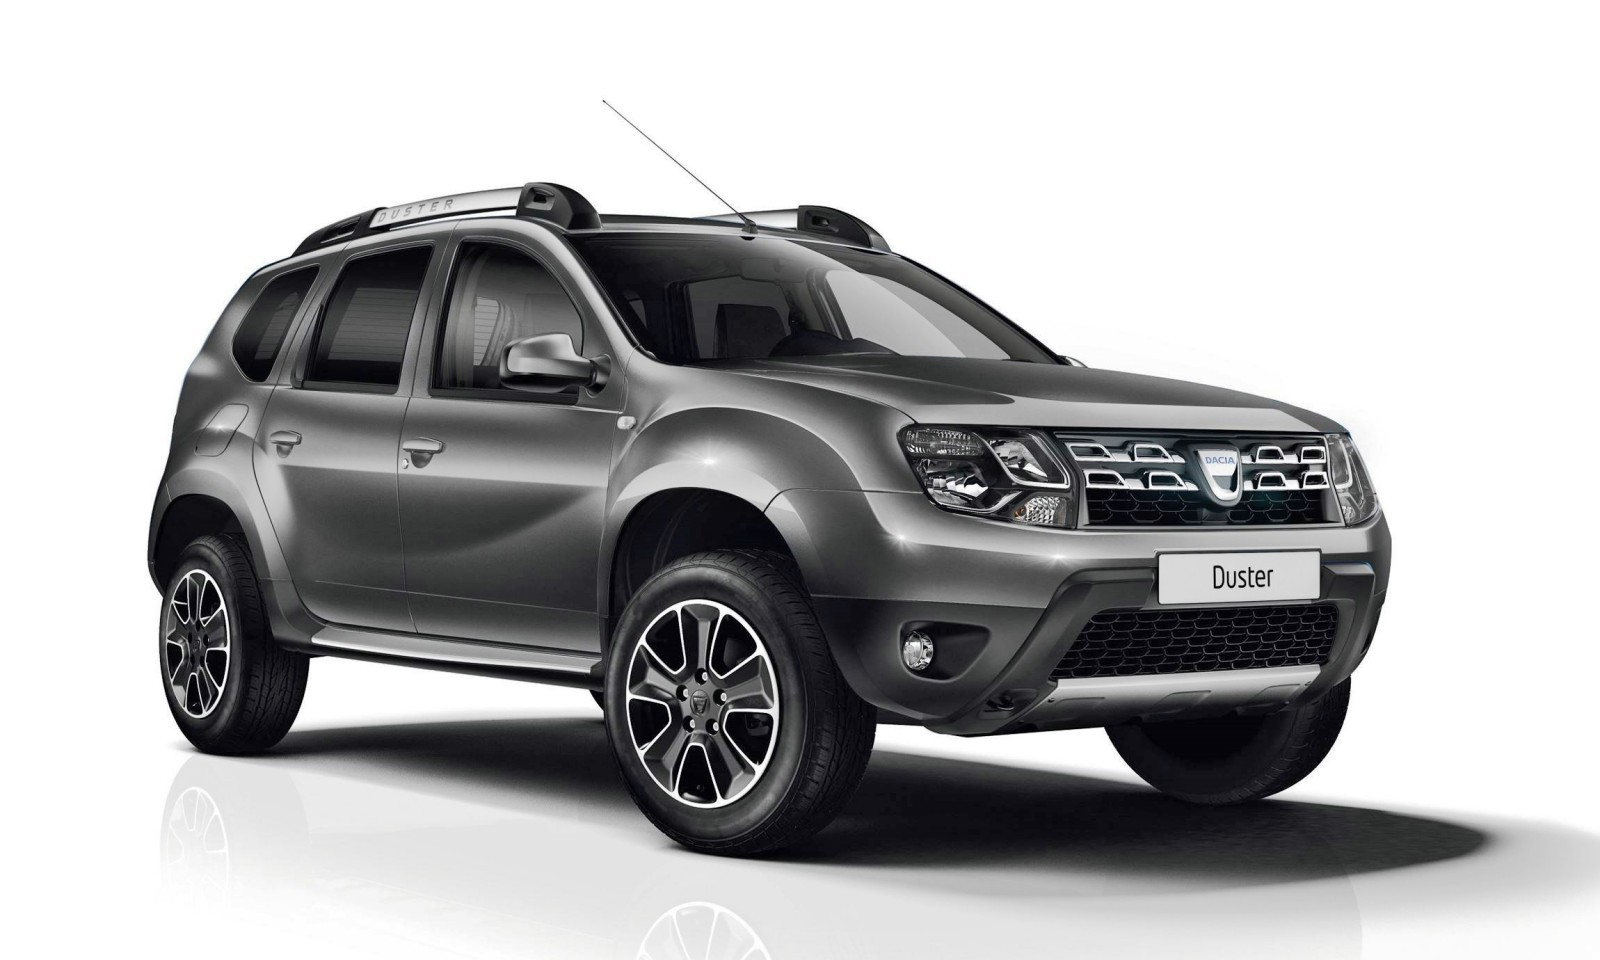 2016 dacia duster for Dacia duster urban explorer prezzo